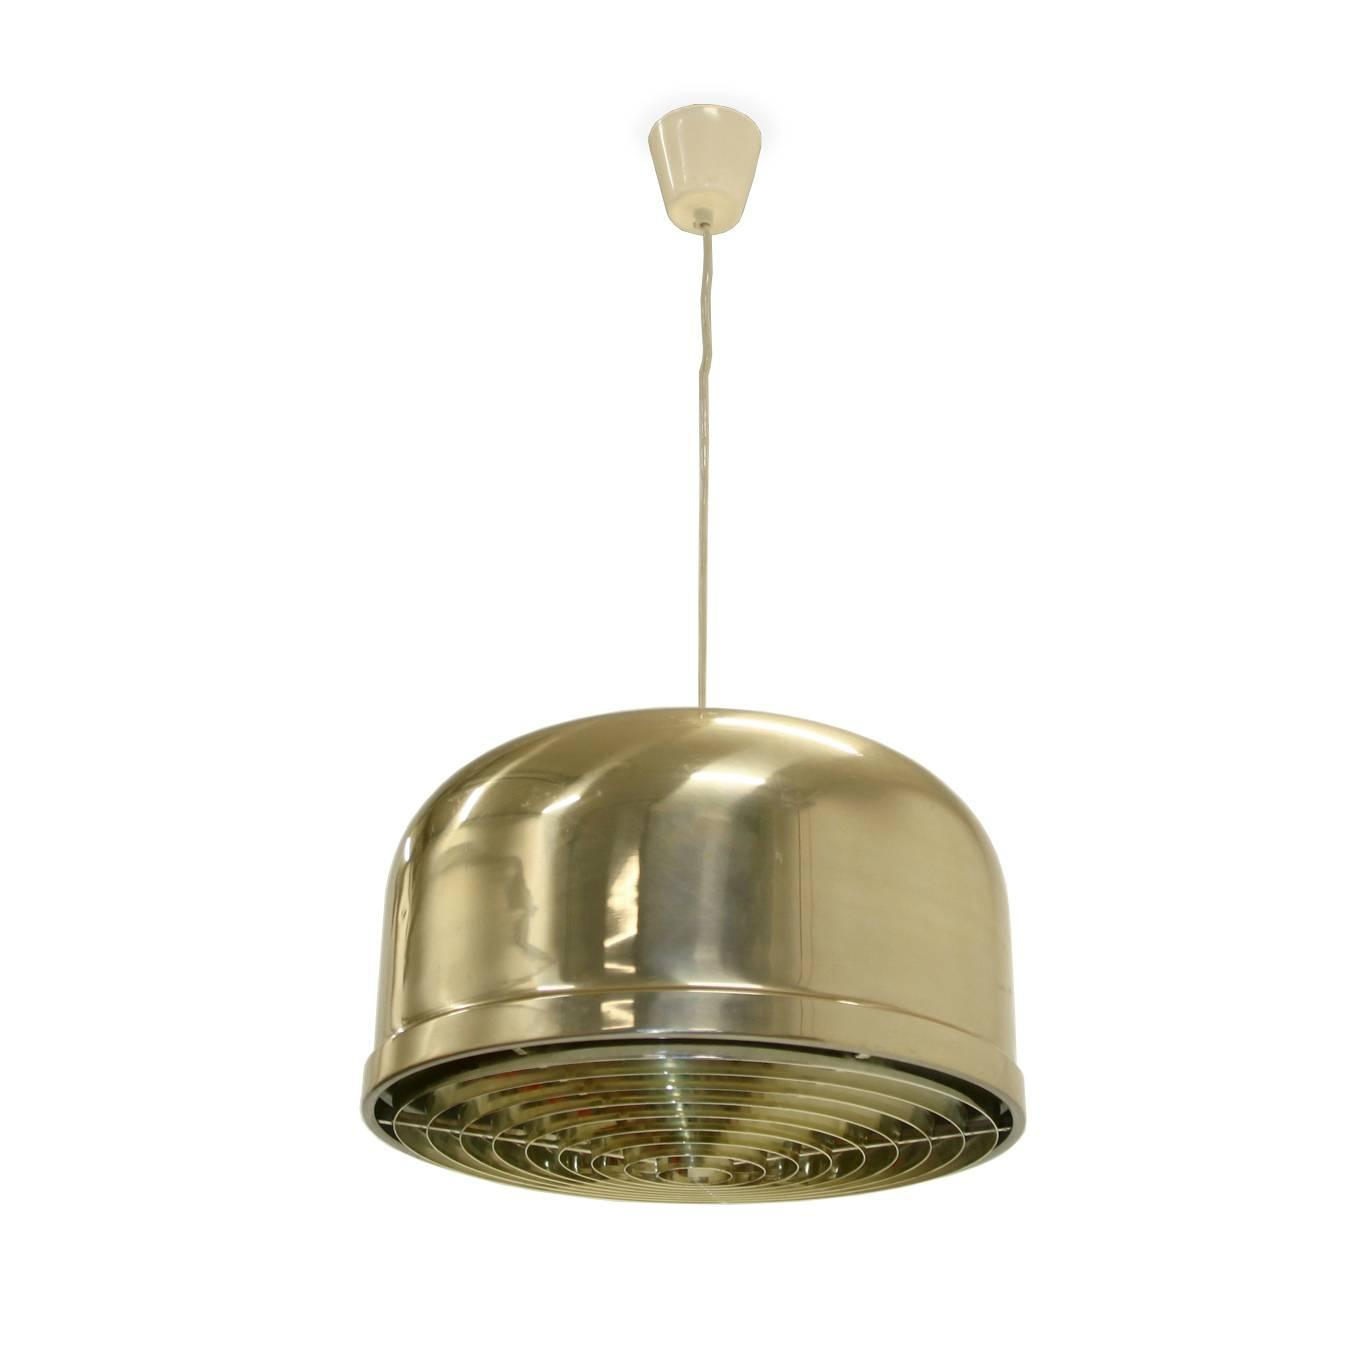 Scandinavian mid century ceiling light at 1stdibs for Mid century ceiling lamp